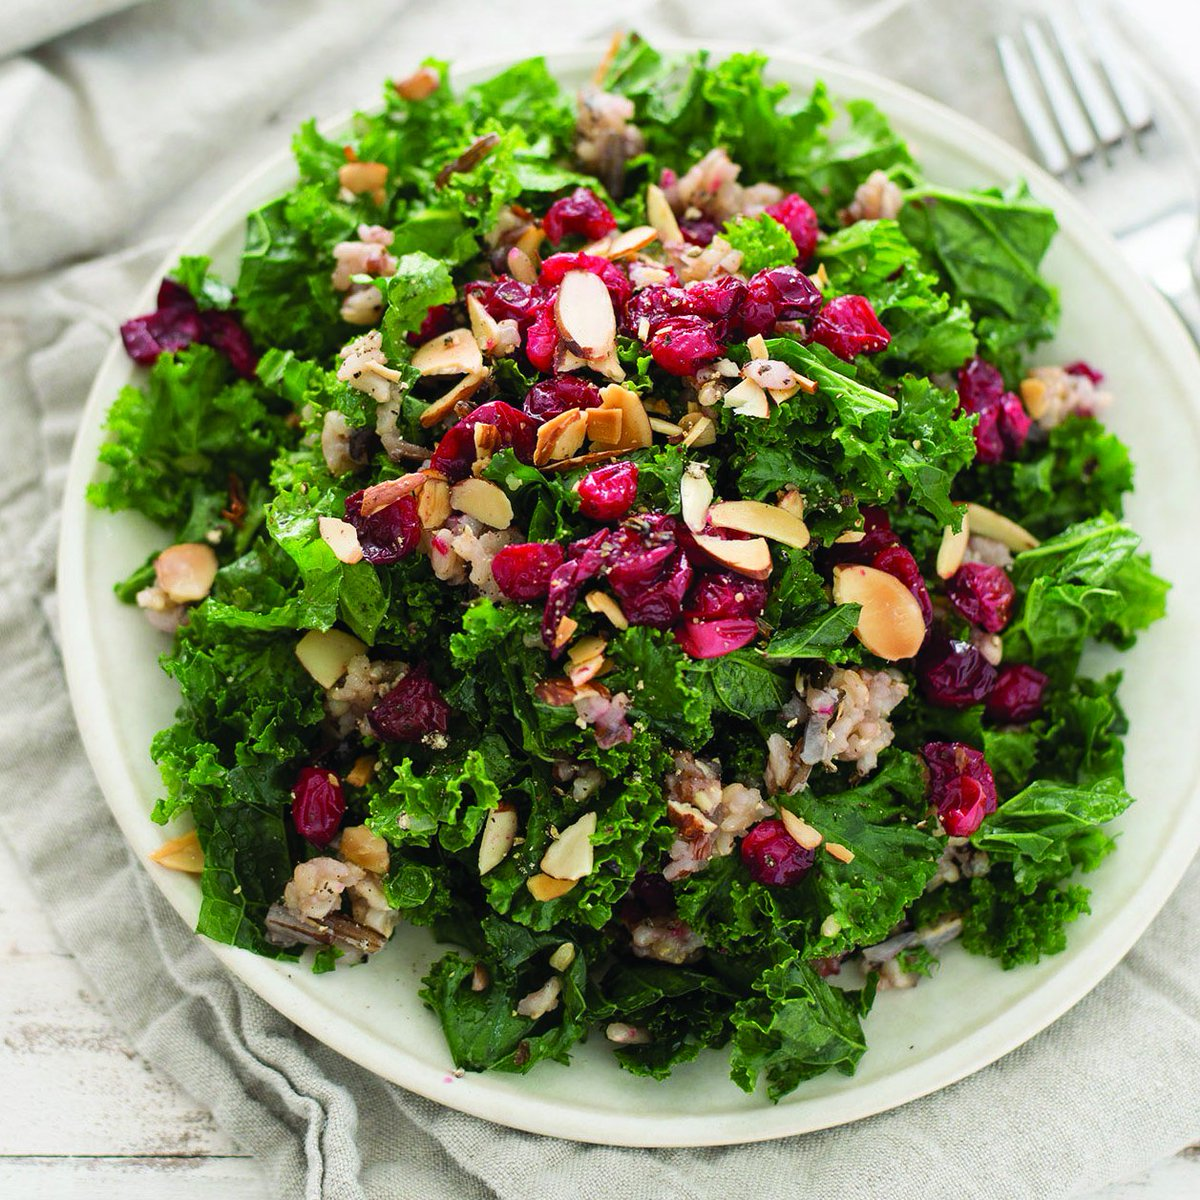 Go wild for this Roasted Cranberry, Rice & Kale Salad #FreshCranFriday https://t.co/kDEhX09O9v @delishknowledge https://t.co/UOP76xmyeK